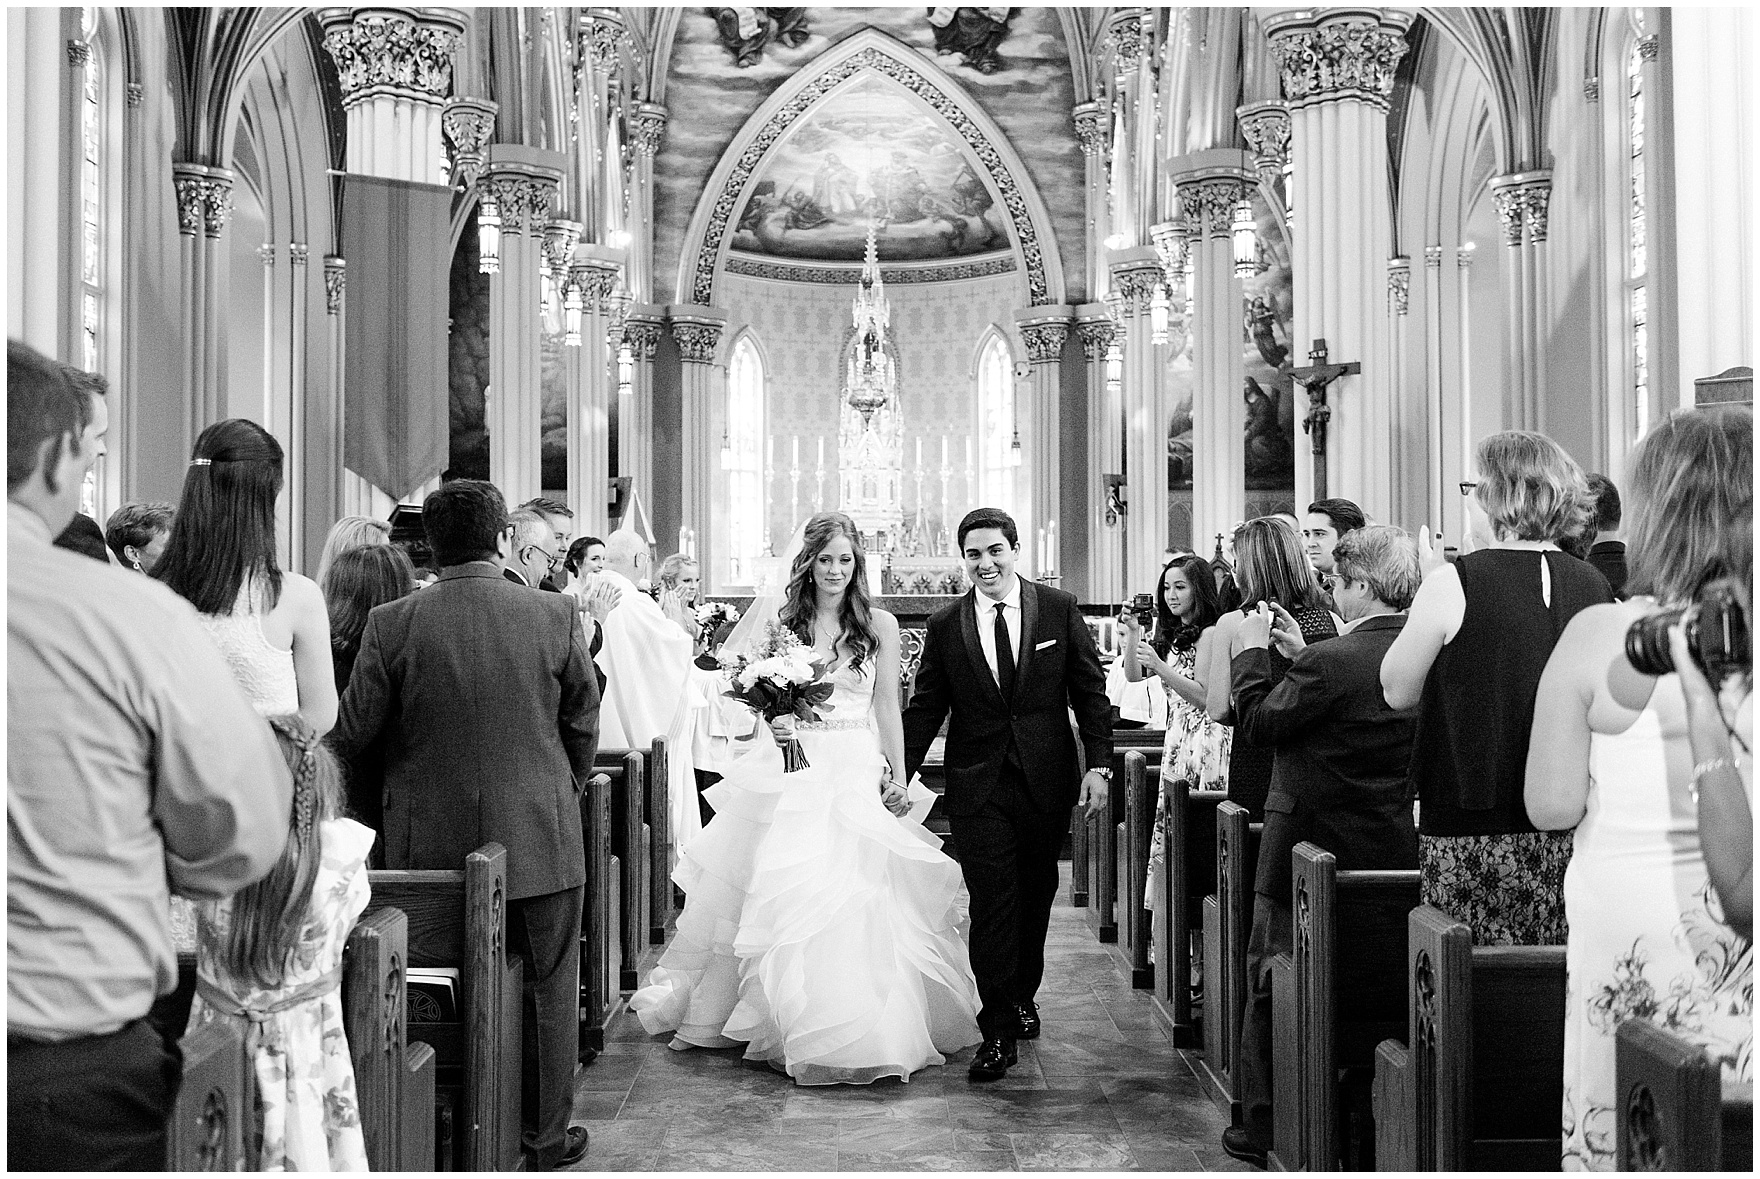 The bride and groom walk down the aisle of the Basilica of the Sacred Heart during a University of Notre Dame wedding.